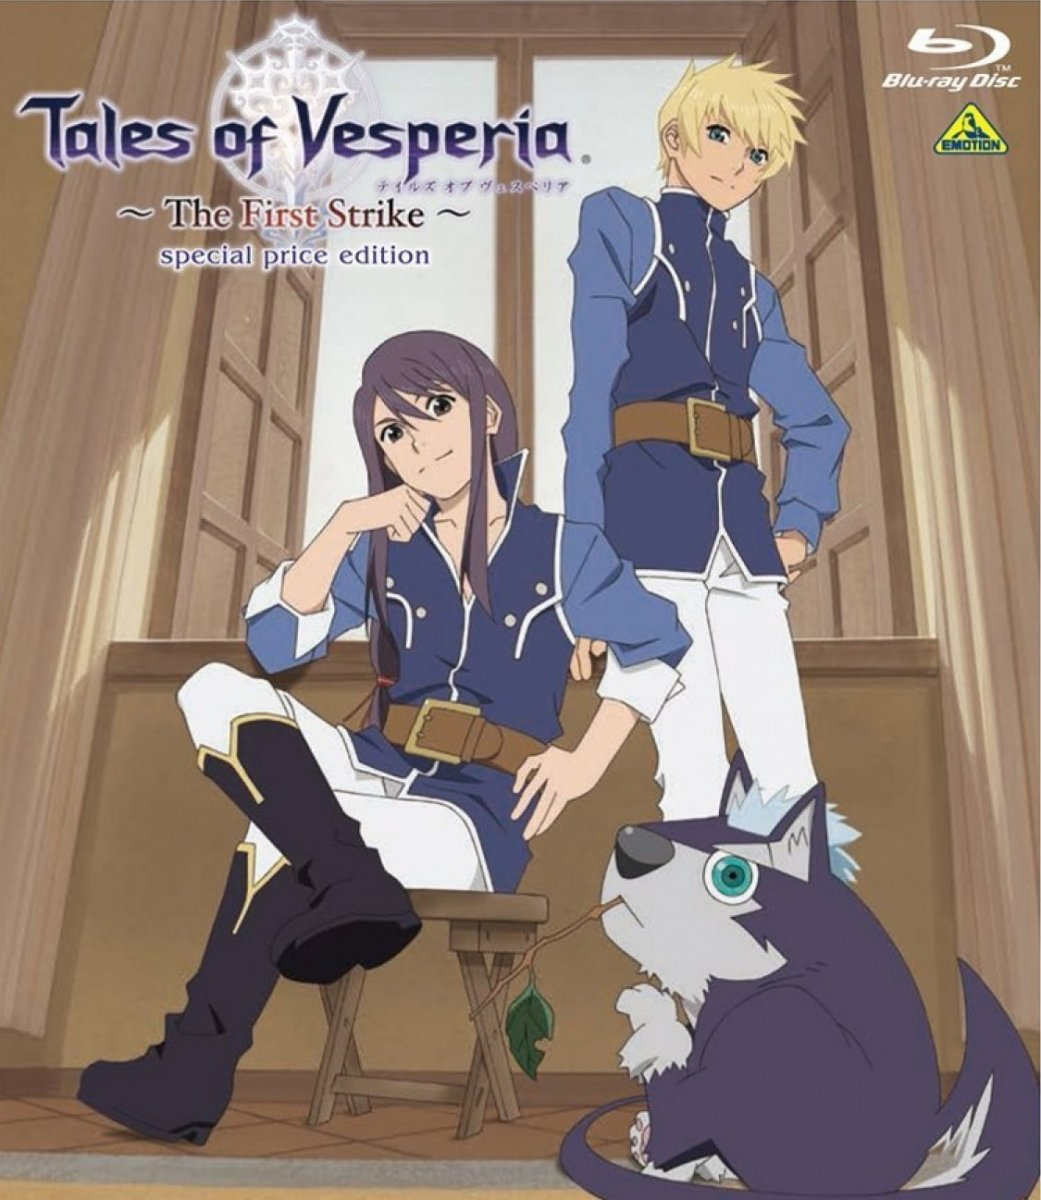 first-strike-special-price-editiontales-of-vesperia-411111176881.1.jpg.760a0781ada0330eaf2ebb76bb42232b.jpg